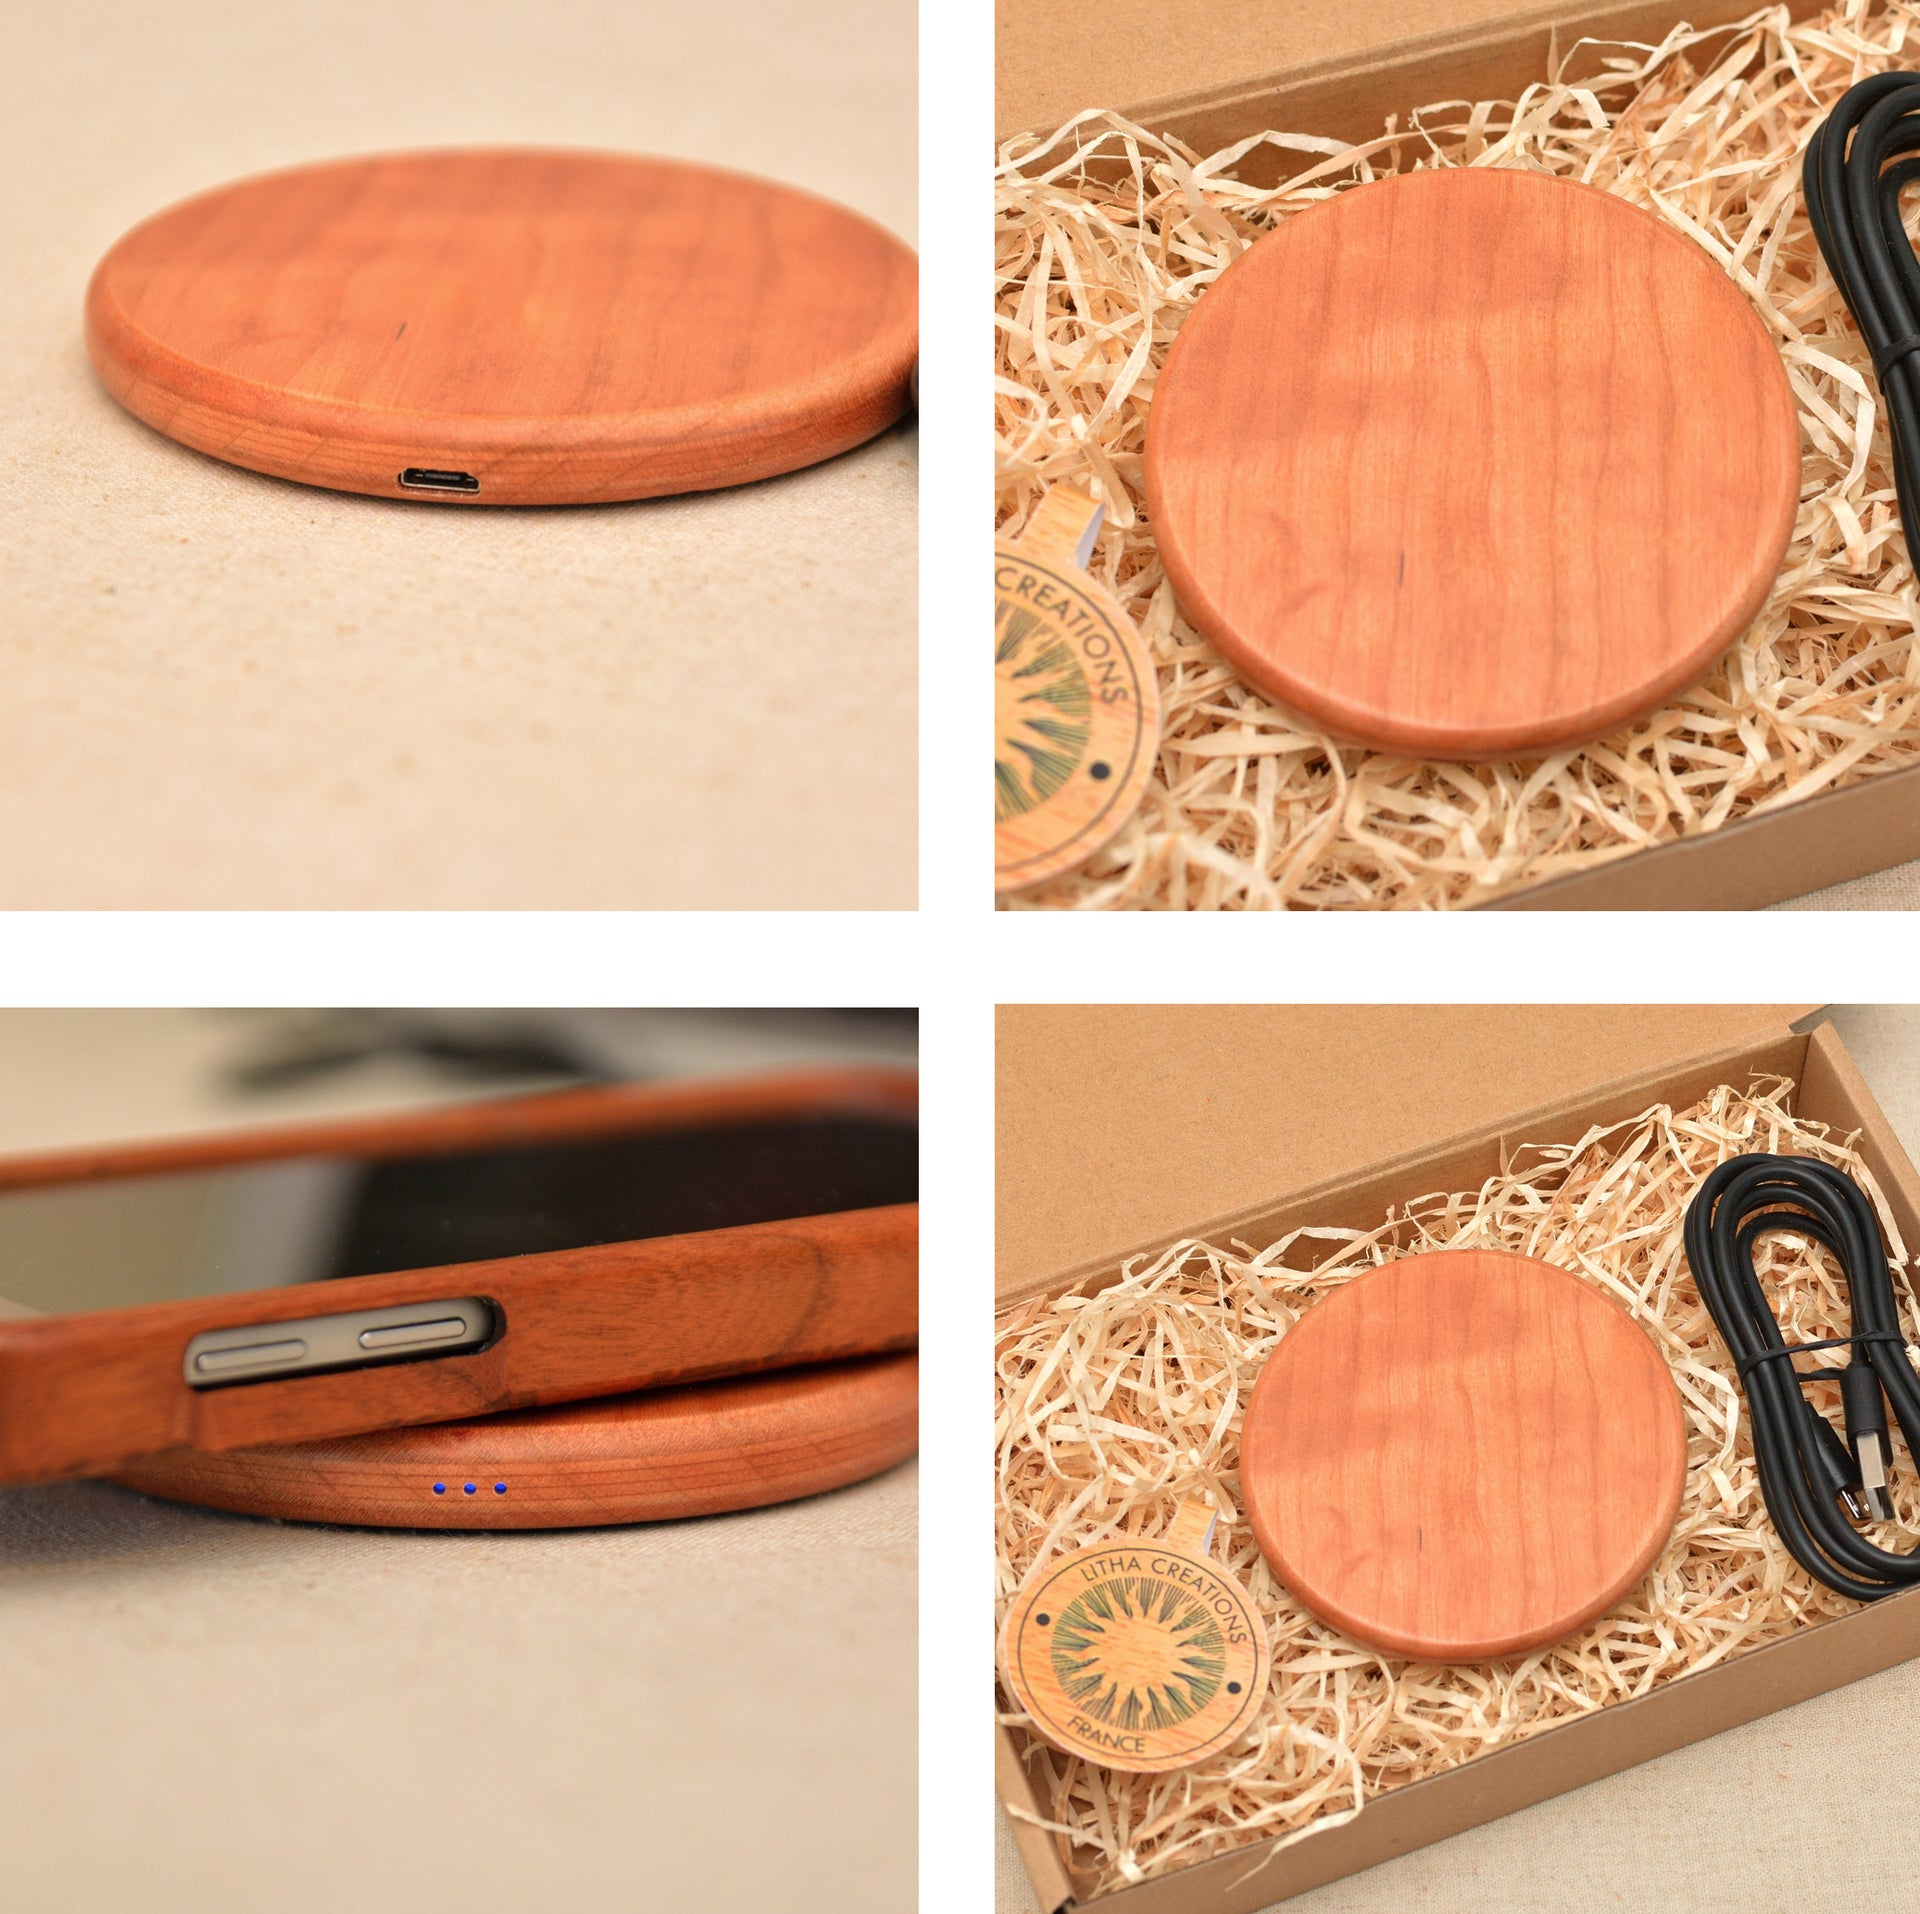 OM WHEEL Wood Wireless QI Charging Pad